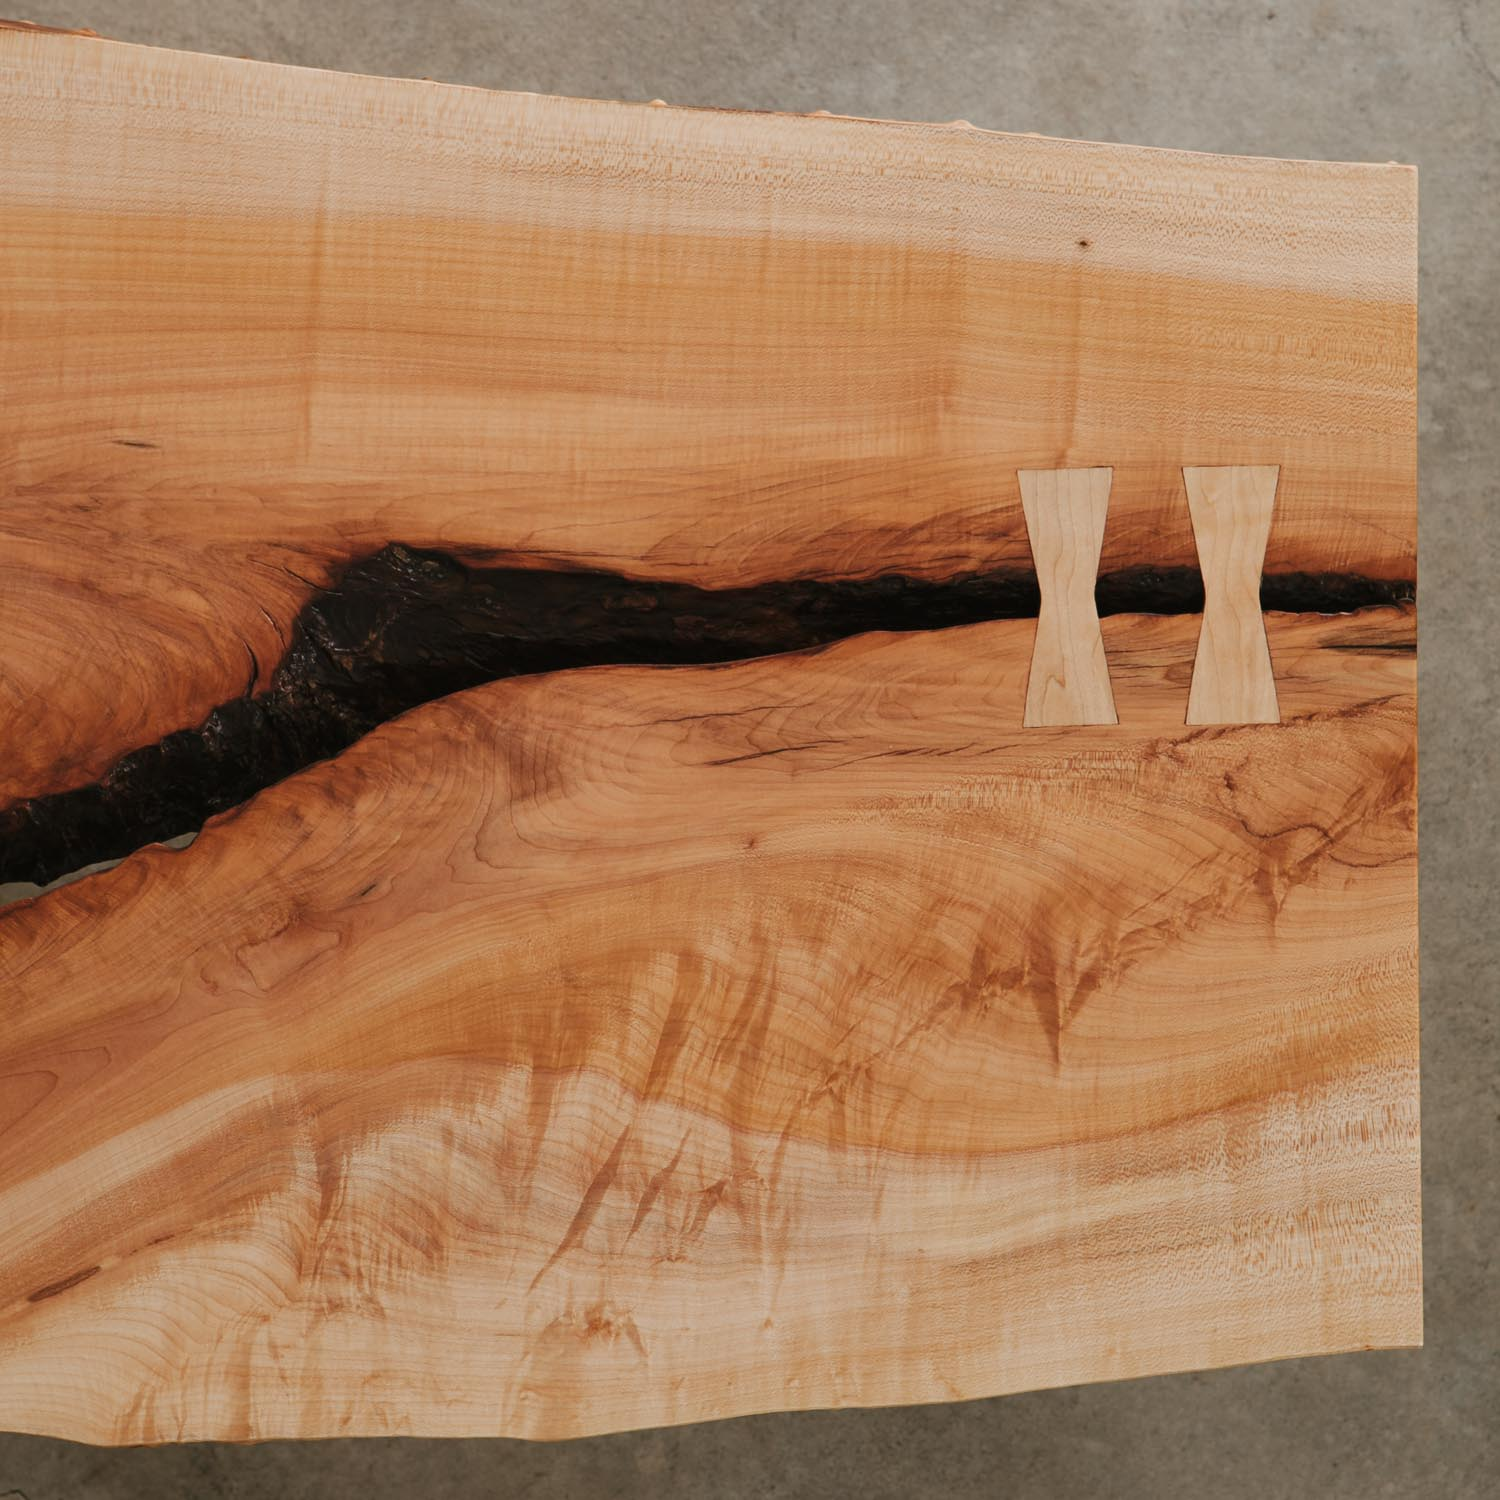 Maple slab butterfly joints with natural wood characteristics